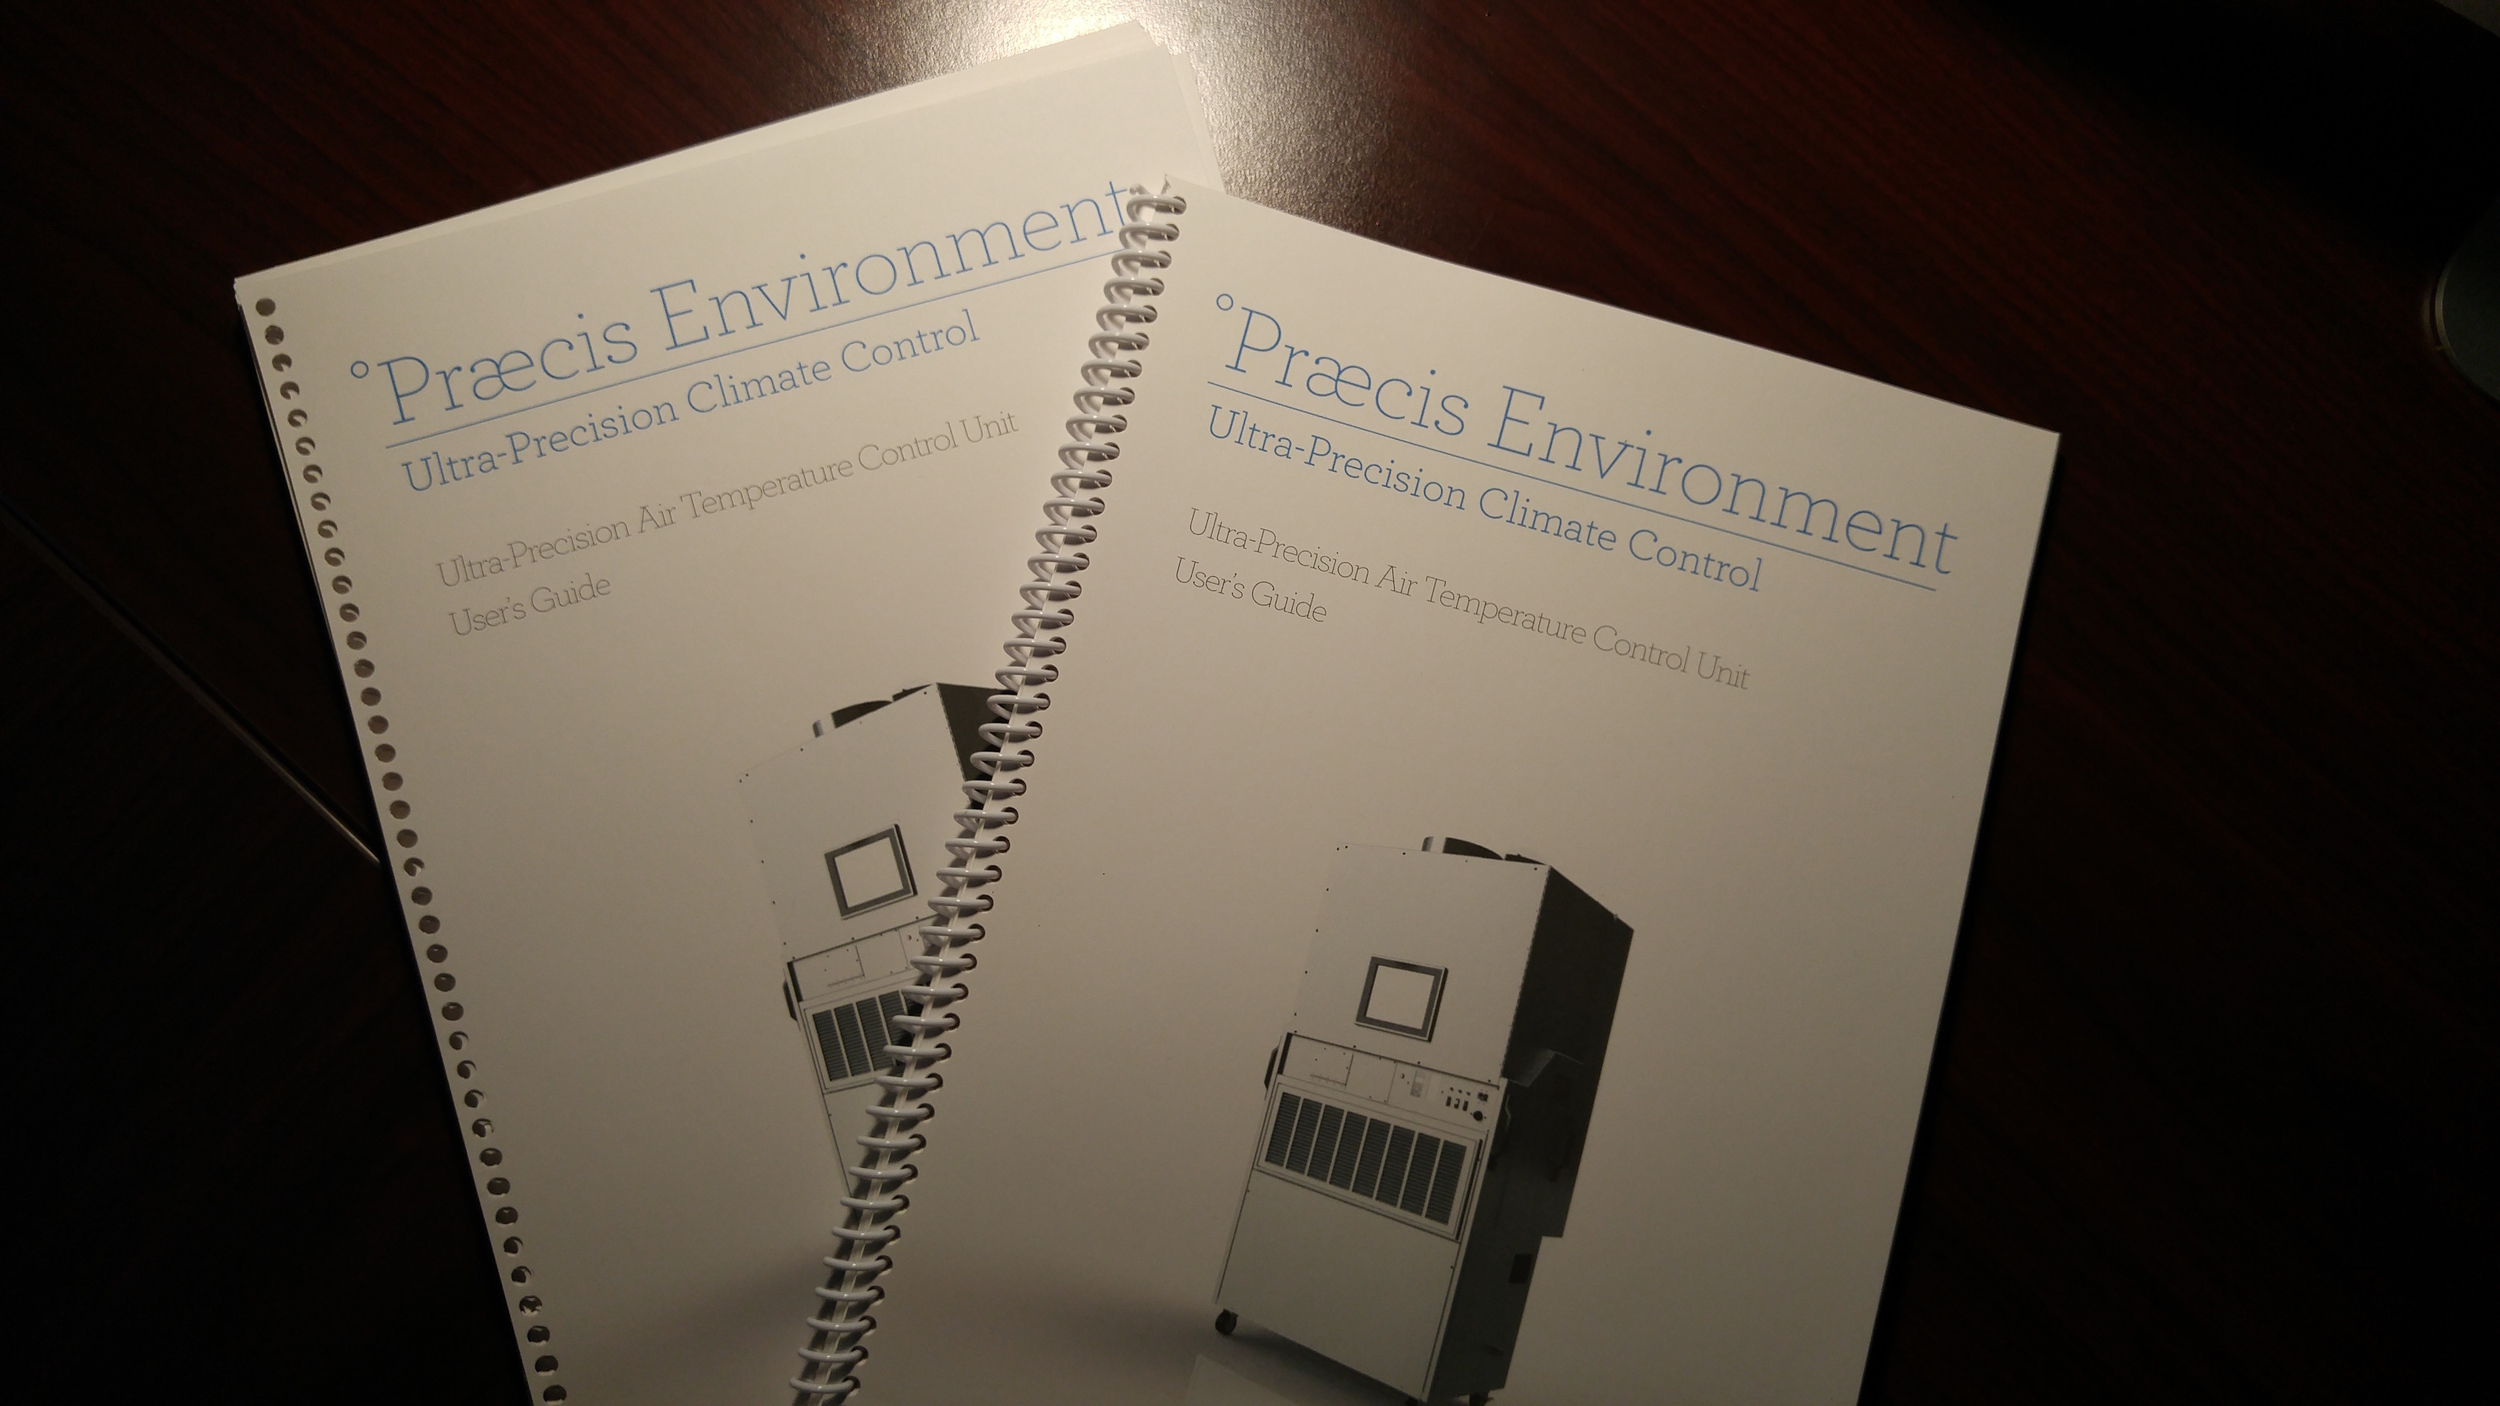 Praecis Environment Ultra Precision Temperature Control Manuals